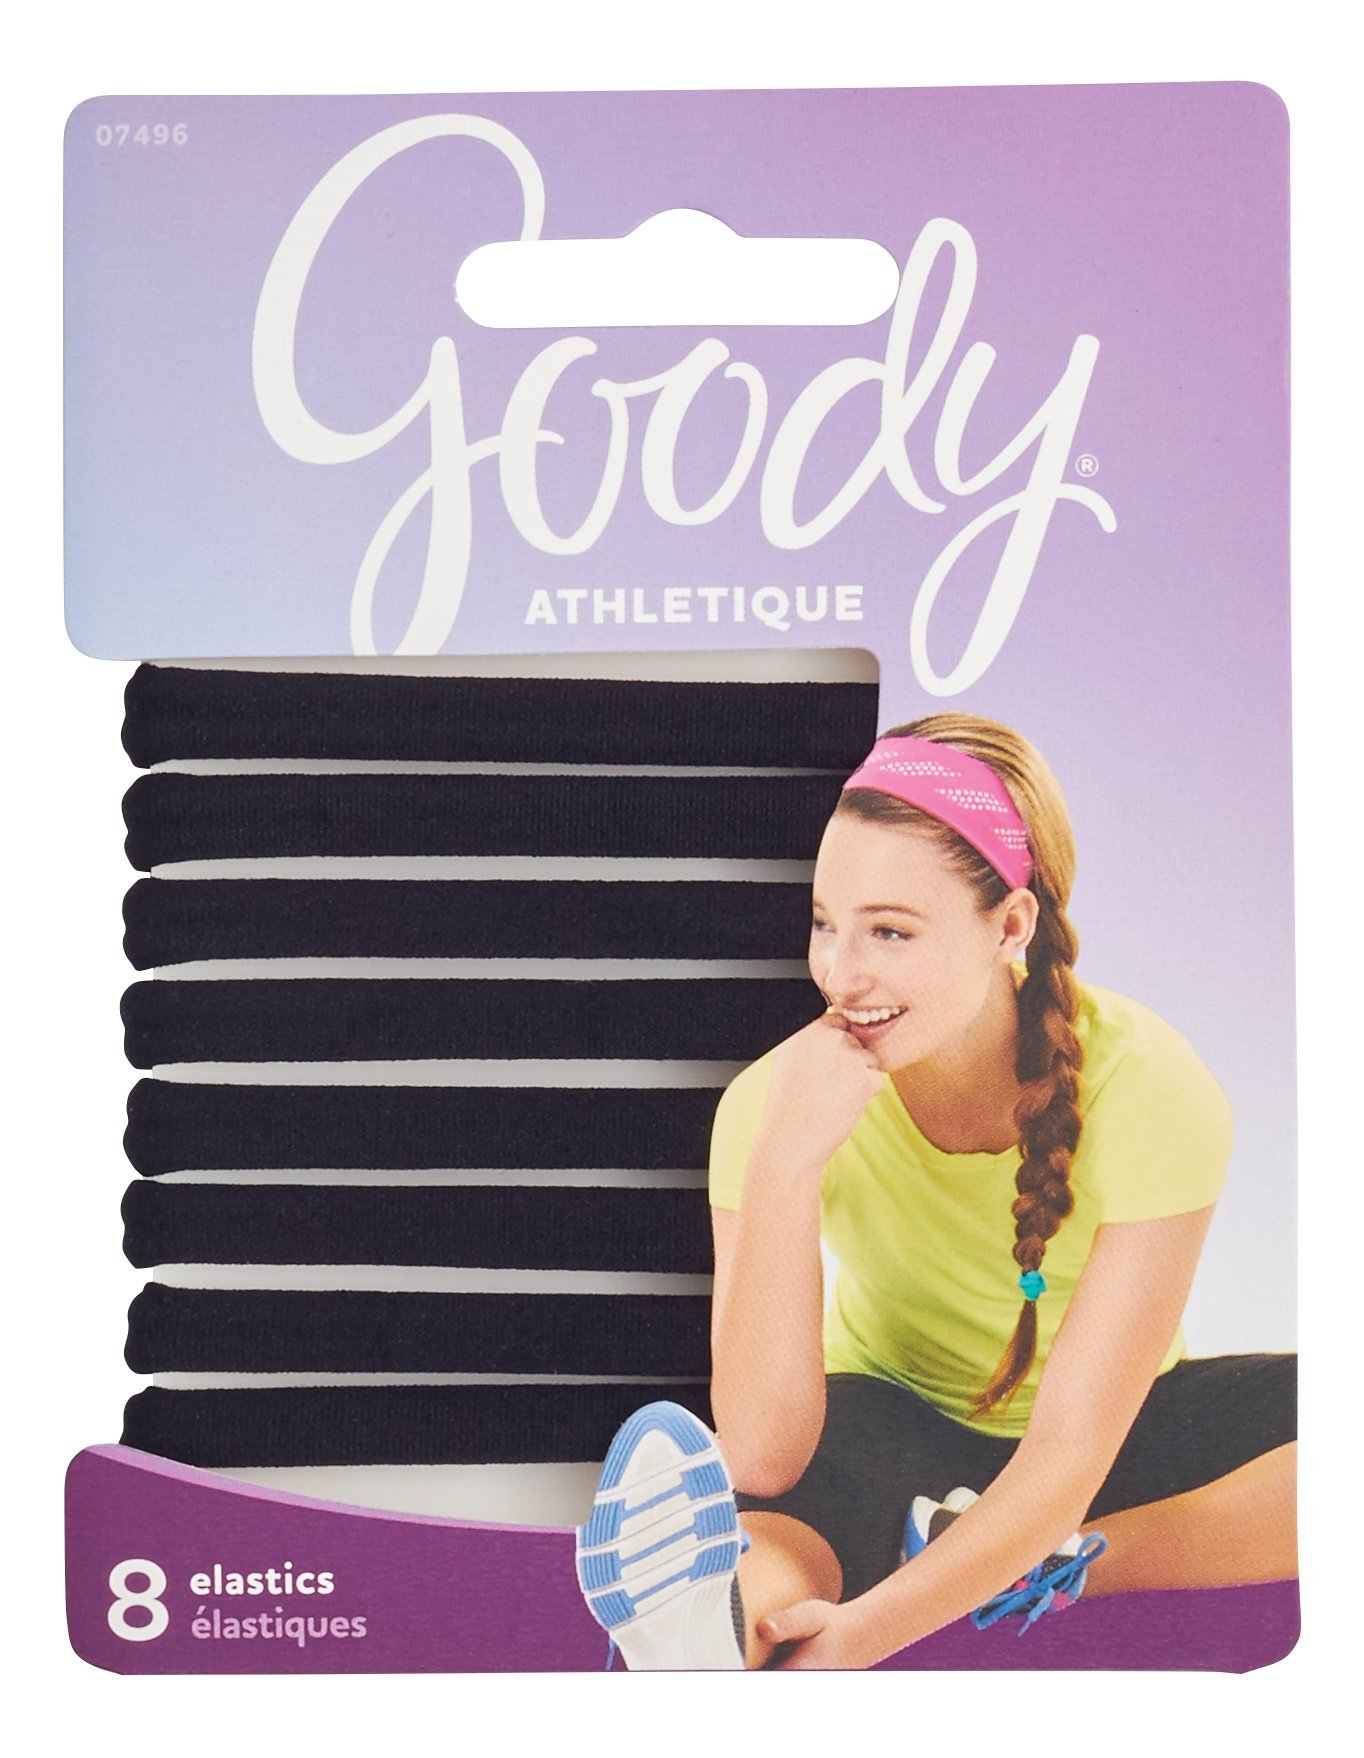 Goody Women's Athletique Sweat Stretch Elastics, 8 Count (packaging may vary)